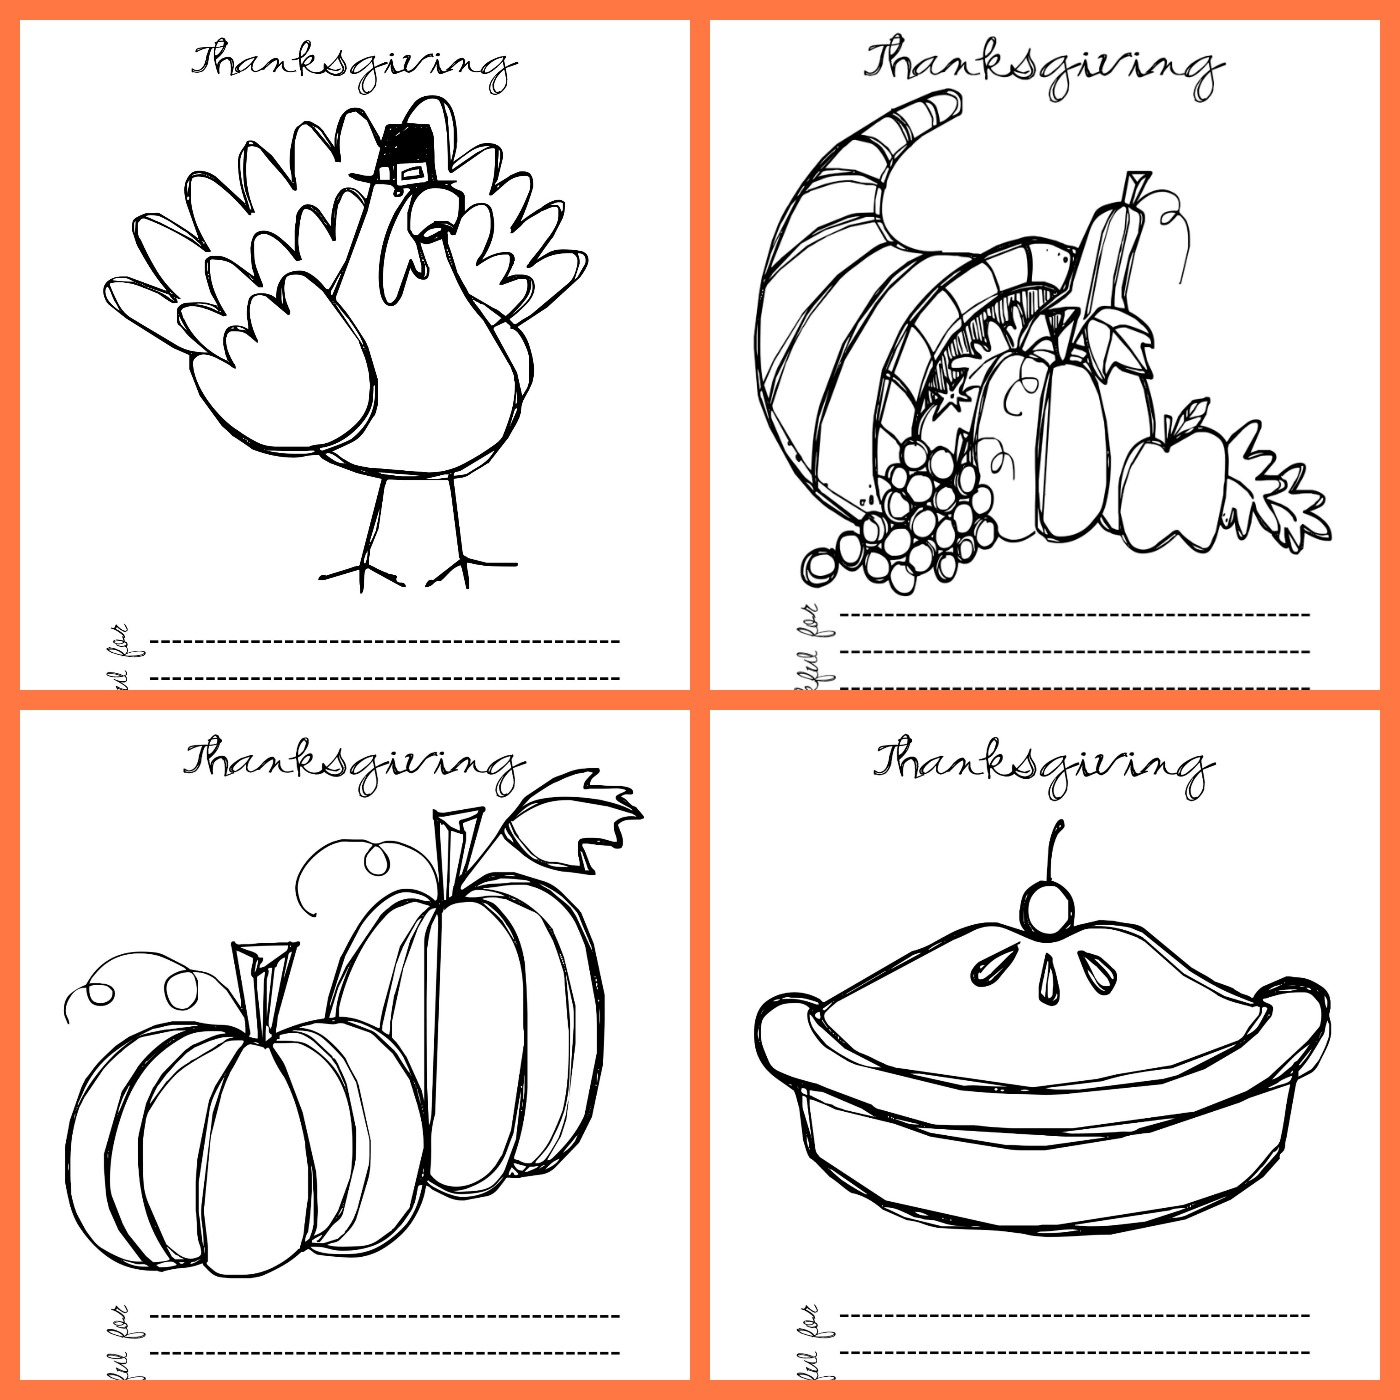 Thanksgiving Day Coloring Pages Free Free Printable Thanksgiving Coloring Pages Lil Luna